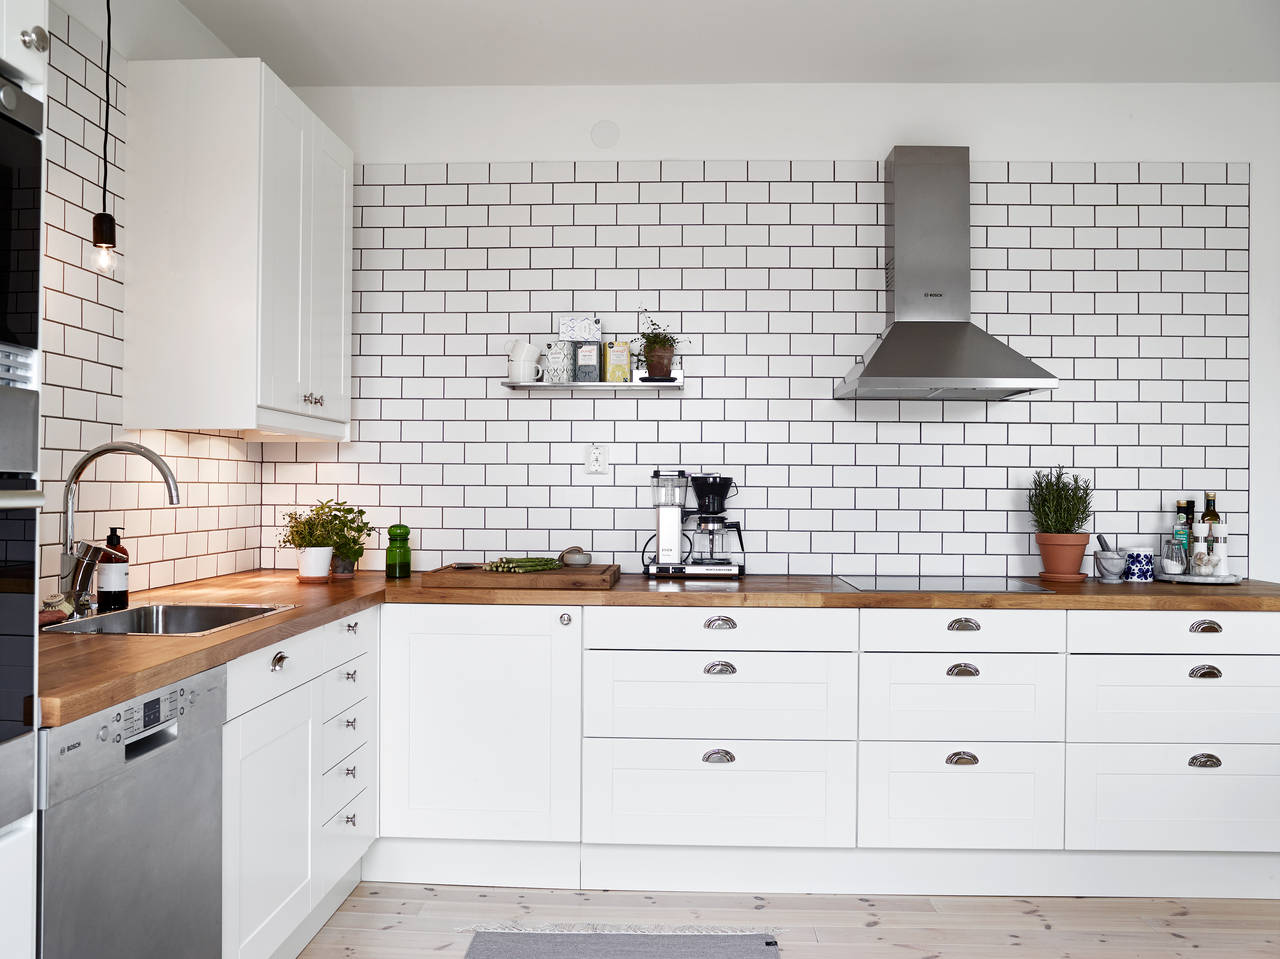 A White Tiles Black Grout Kind Of Kitchen Coco Lapine Designcoco